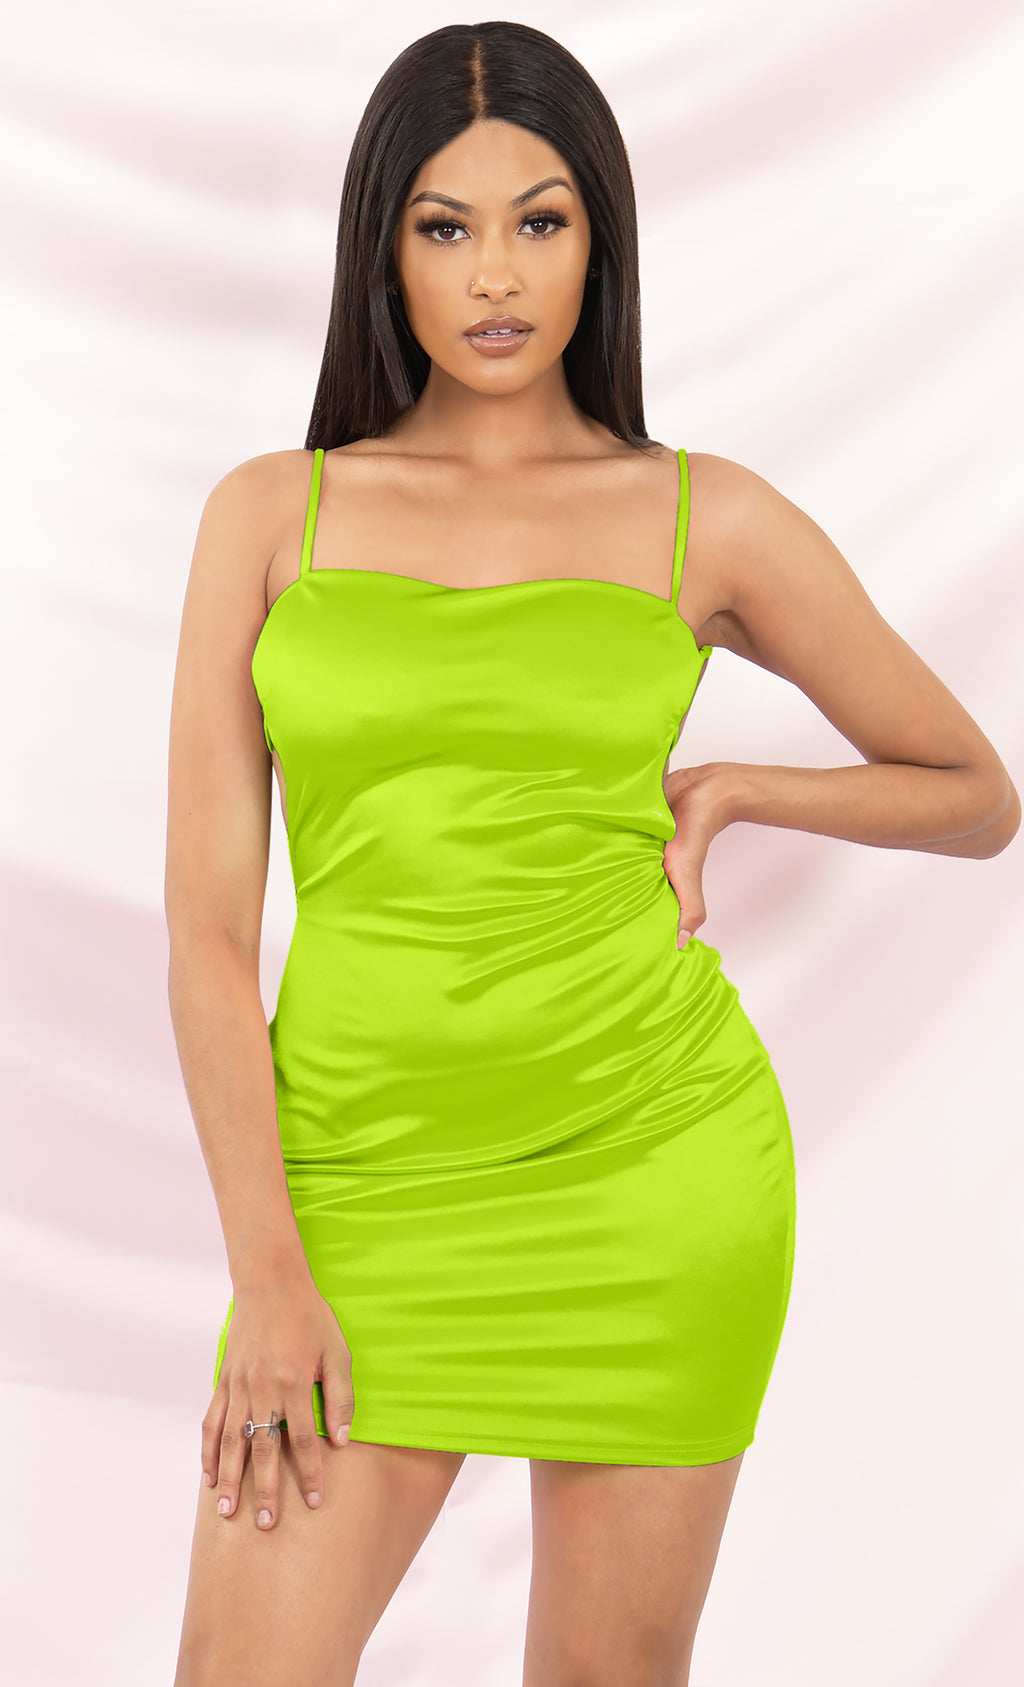 Private Lives Neon Green Sleeveless Spaghetti Strap Square Neck Backless Cut Out Bodycon Mini Dress - 2 Colors Available